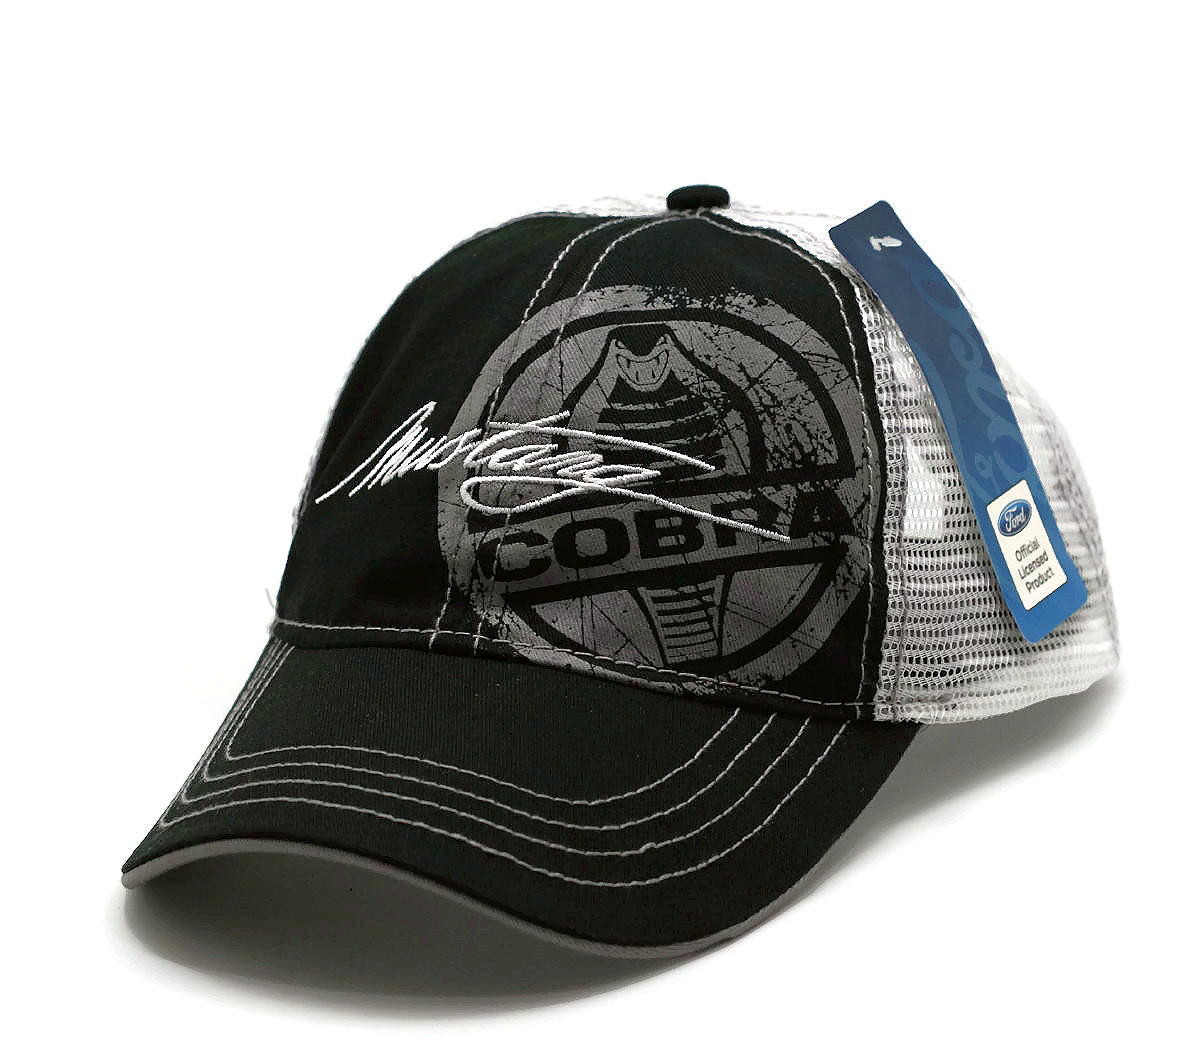 1acd04a7b Hat - Ford Cobra Mustang Adjustable Mesh Vented Ball Cap FREE SHIPPING